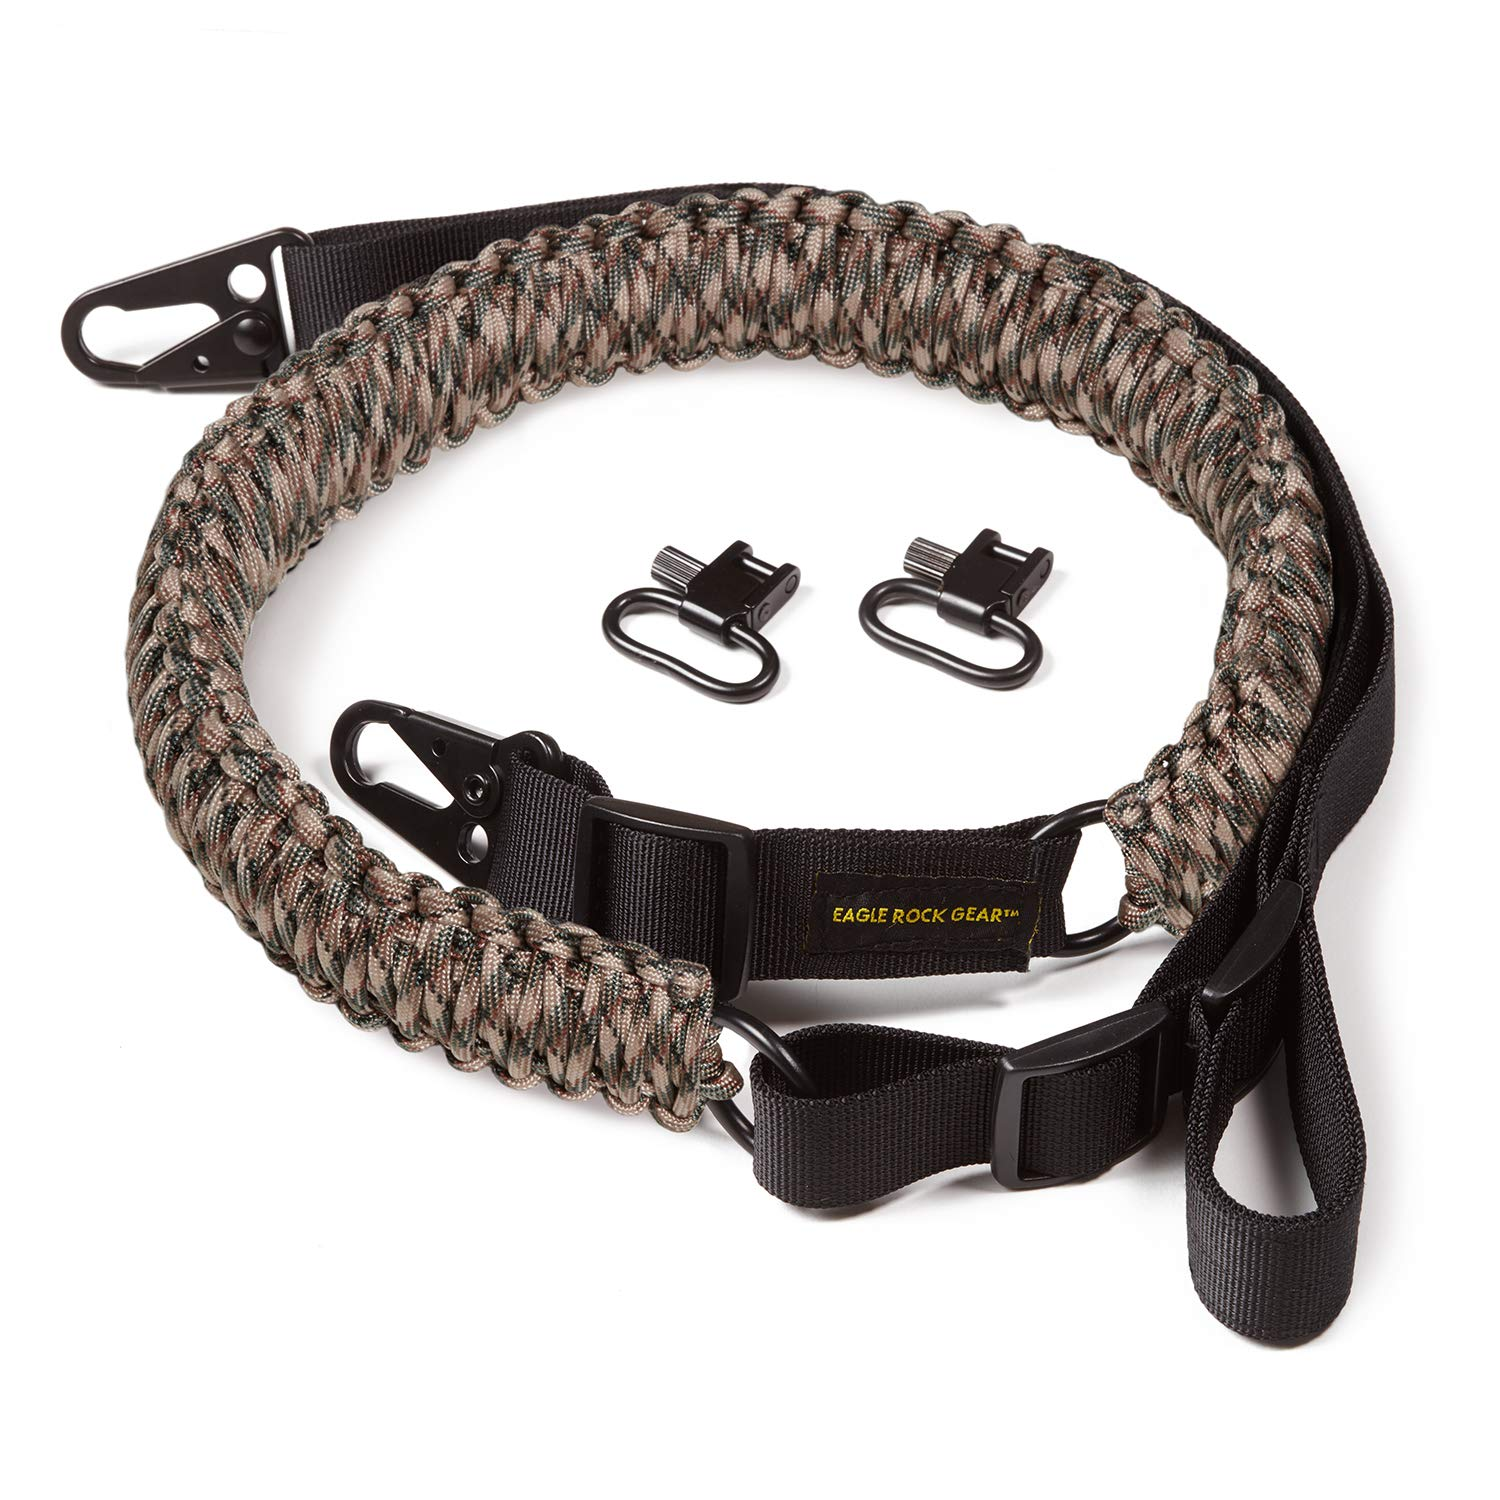 Eagle Rock Gear 550 Paracord 2 Point Gun Sling for Rifles, Shotguns, Crossbows, Airsoft - with Easy Adjustable Strap, HK Clips, Swivels - US Patent Pending (Camouflage) by Eagle Rock Gear